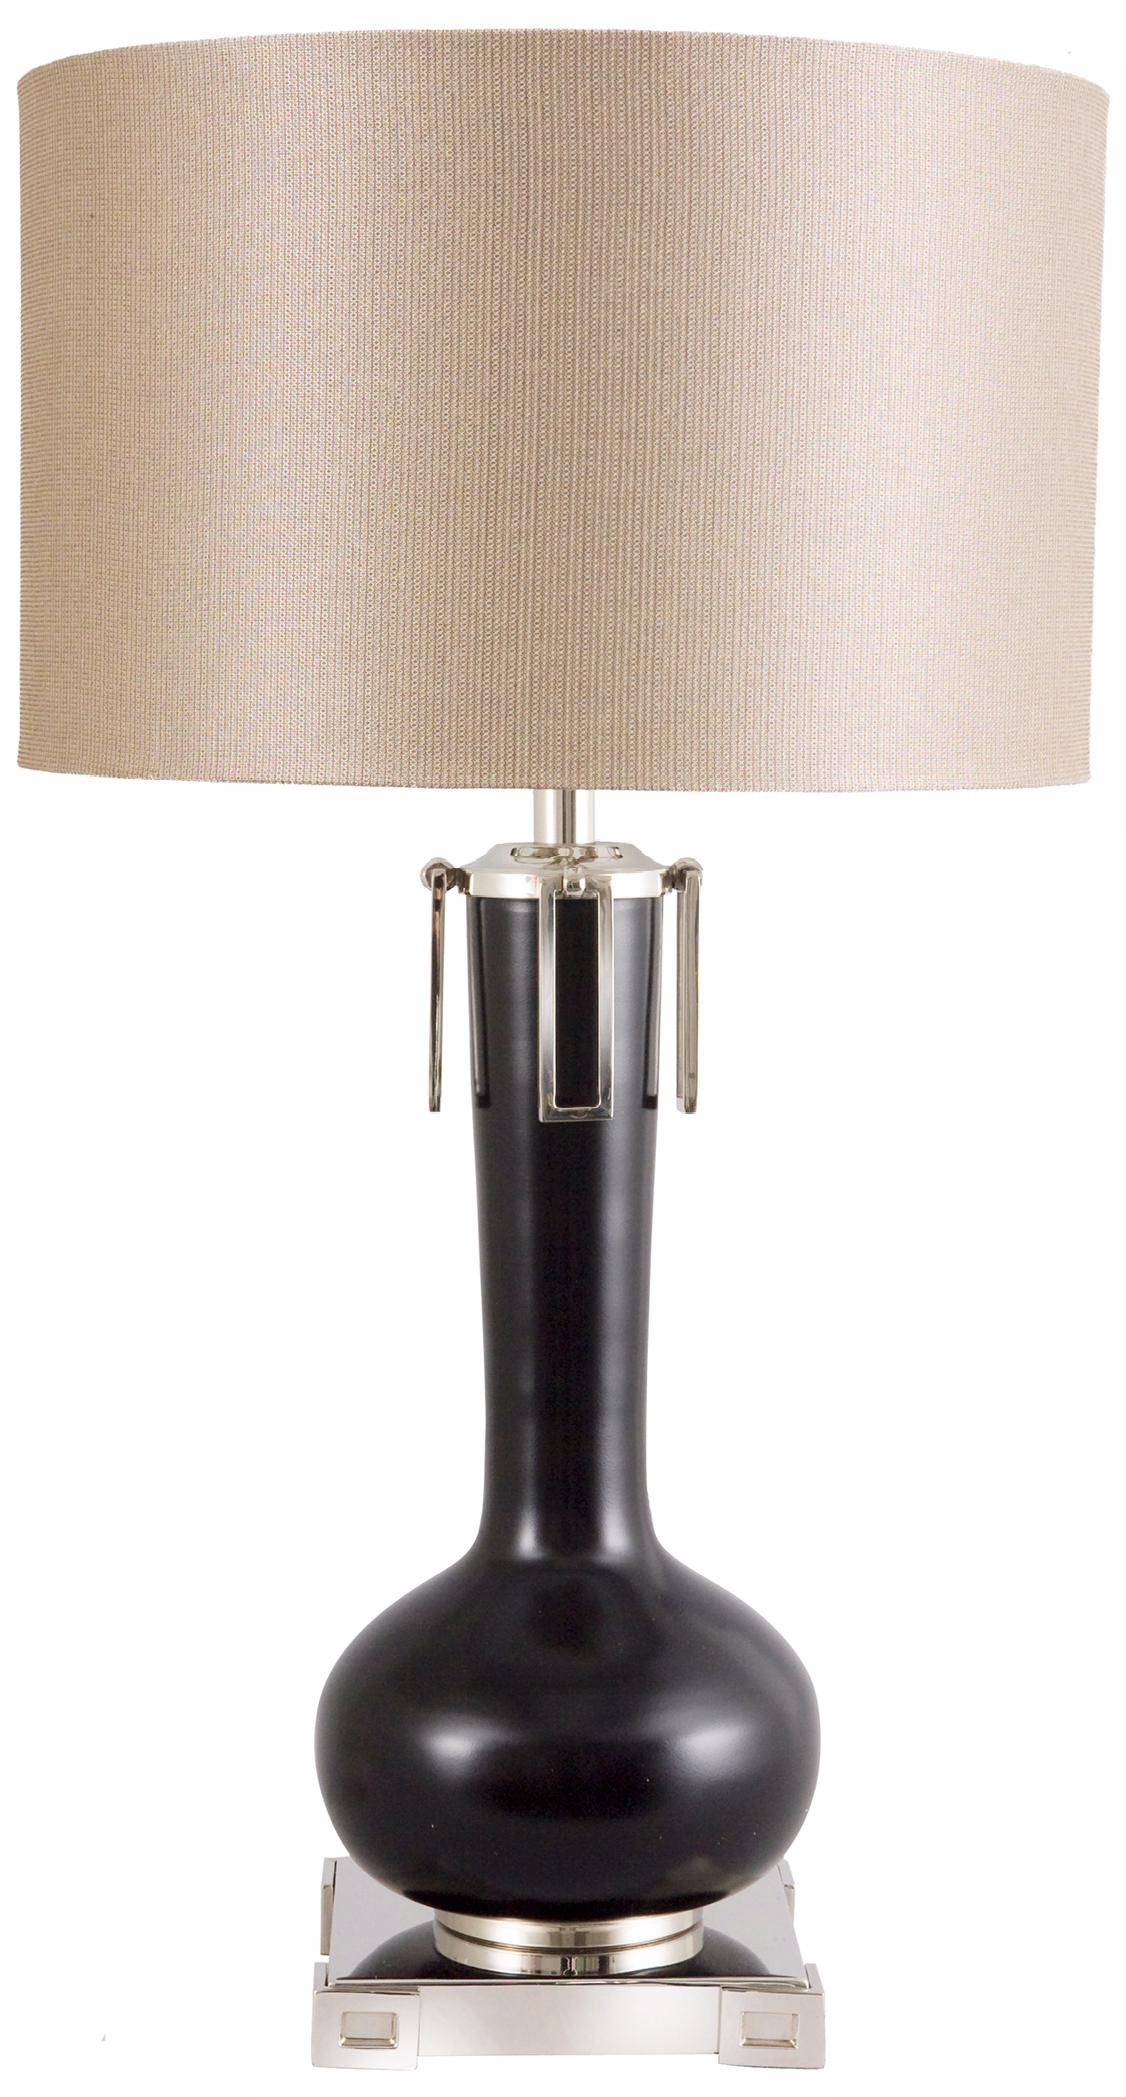 Frederick Cooper Black Eden Table Lamp (N9853)